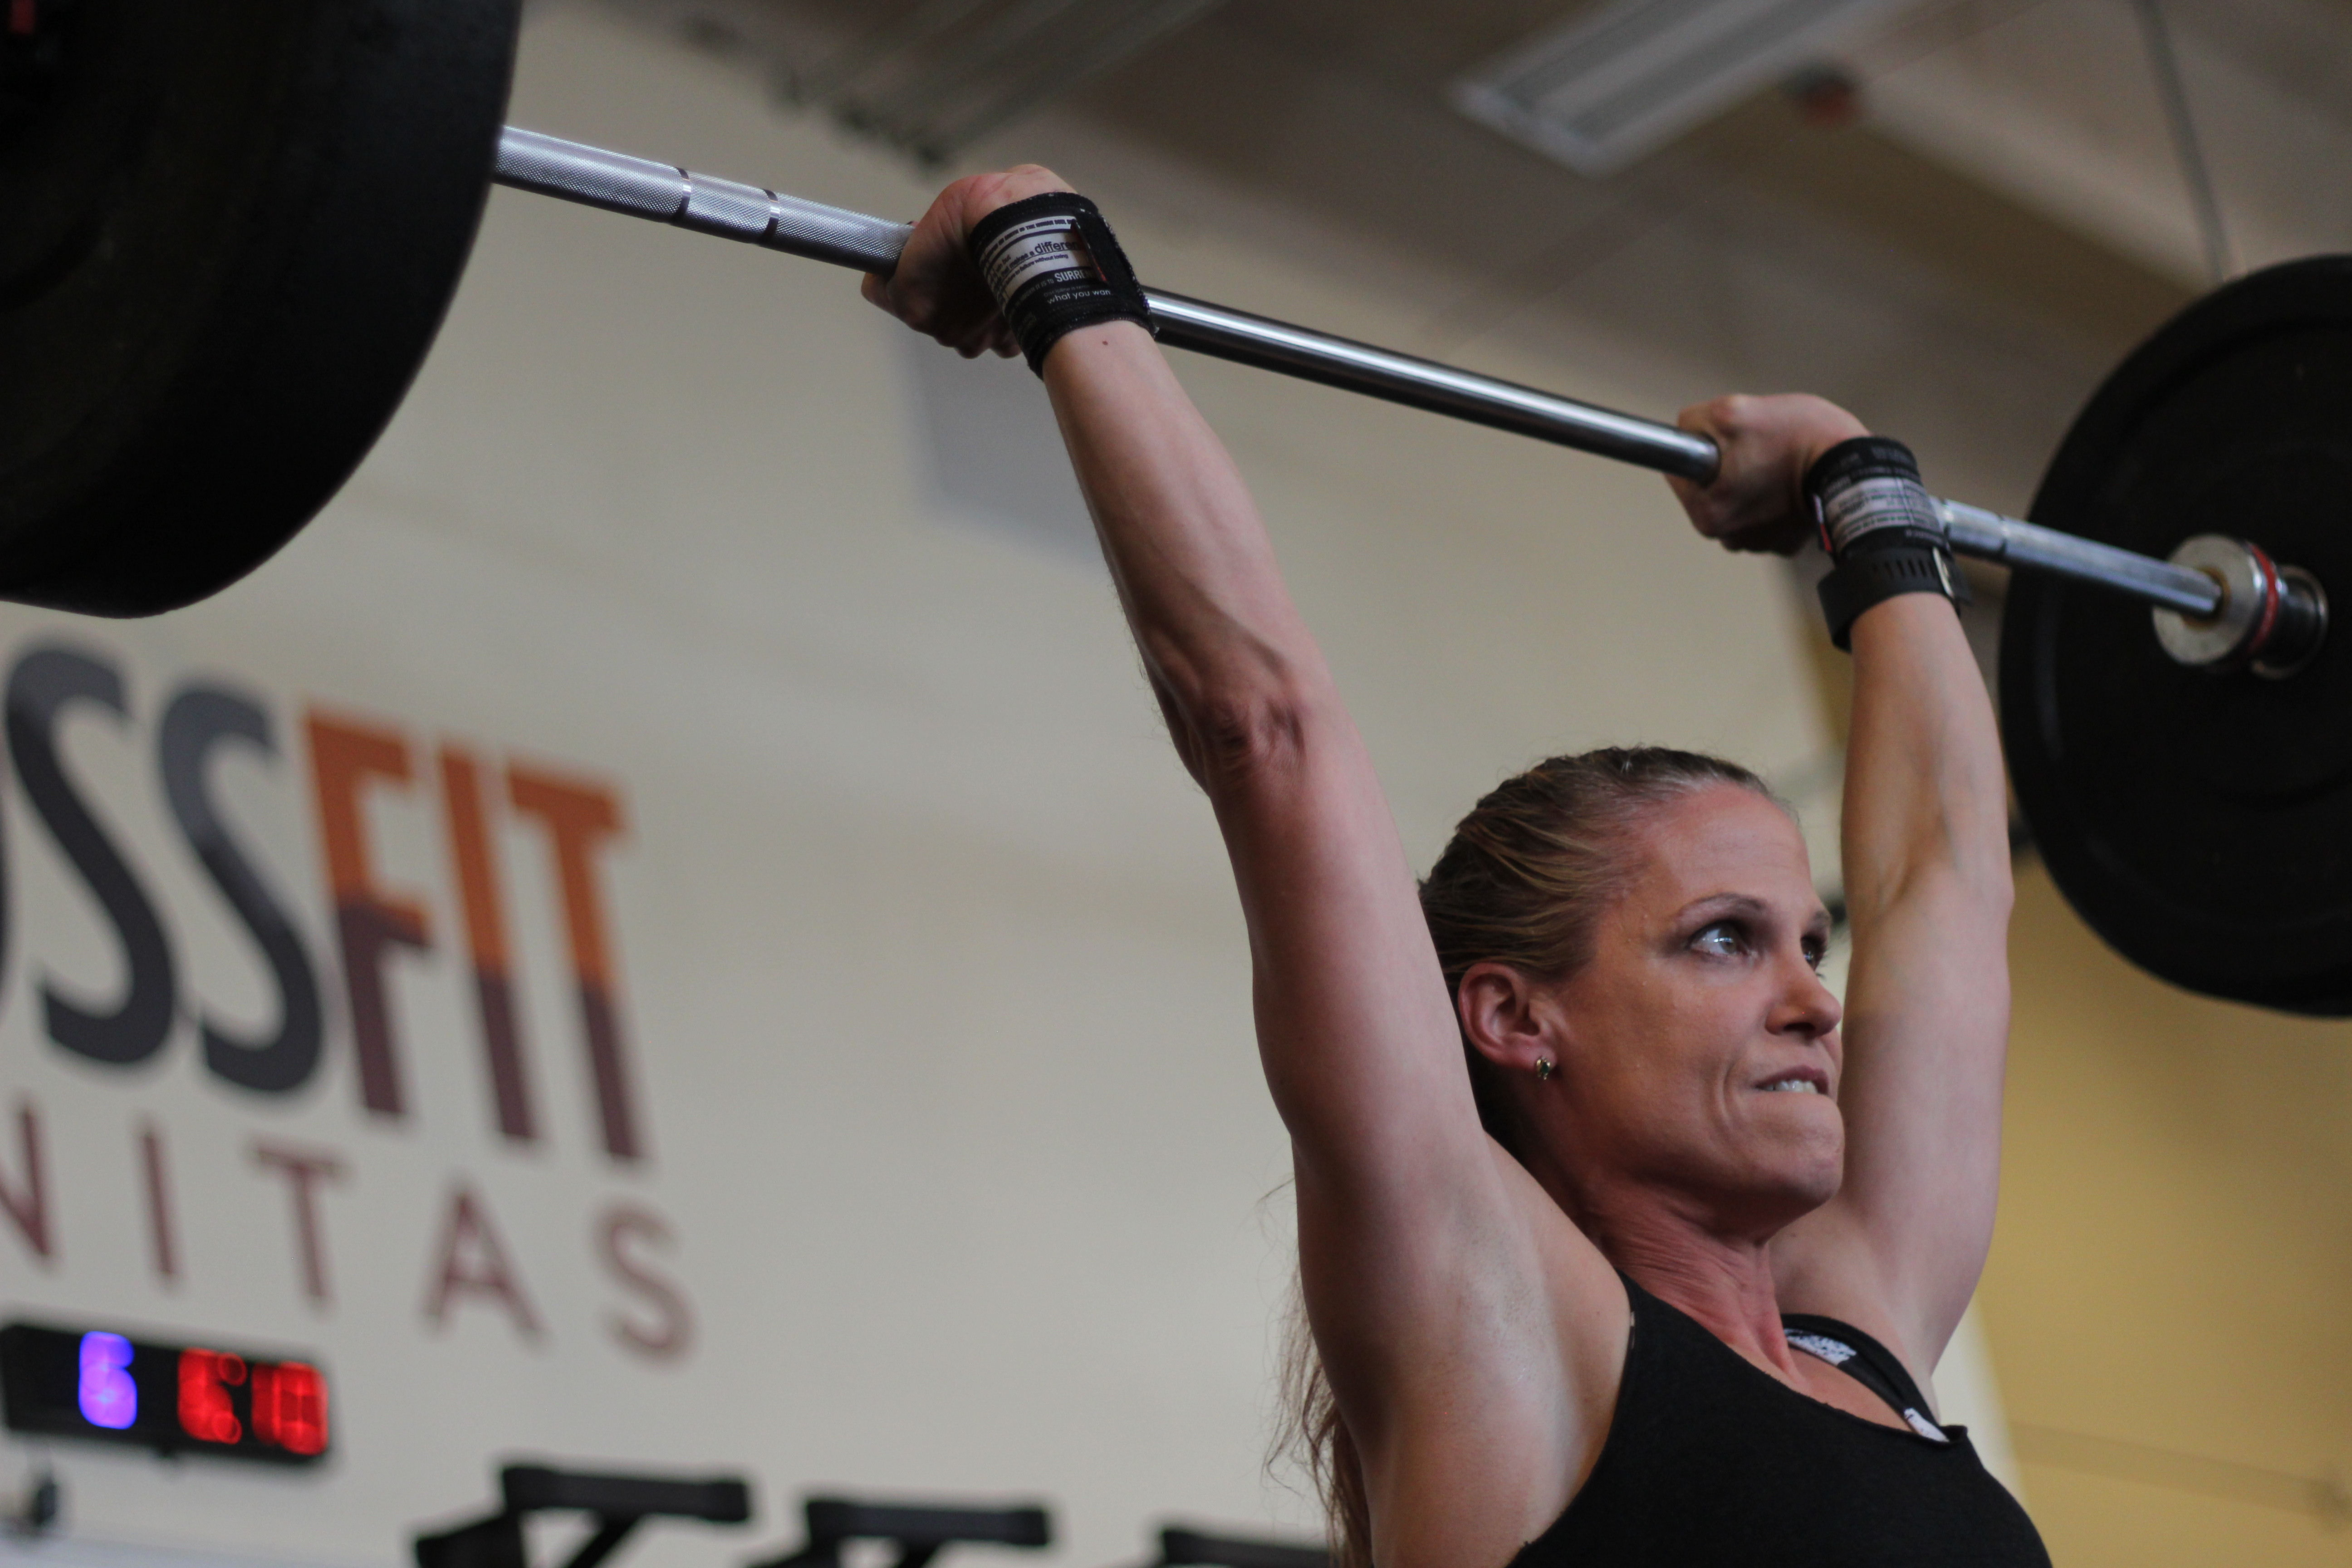 hot crossfit chicks at a crossfit competition doing crossfit clean and jerks at crossfit sanitas in boulder, co